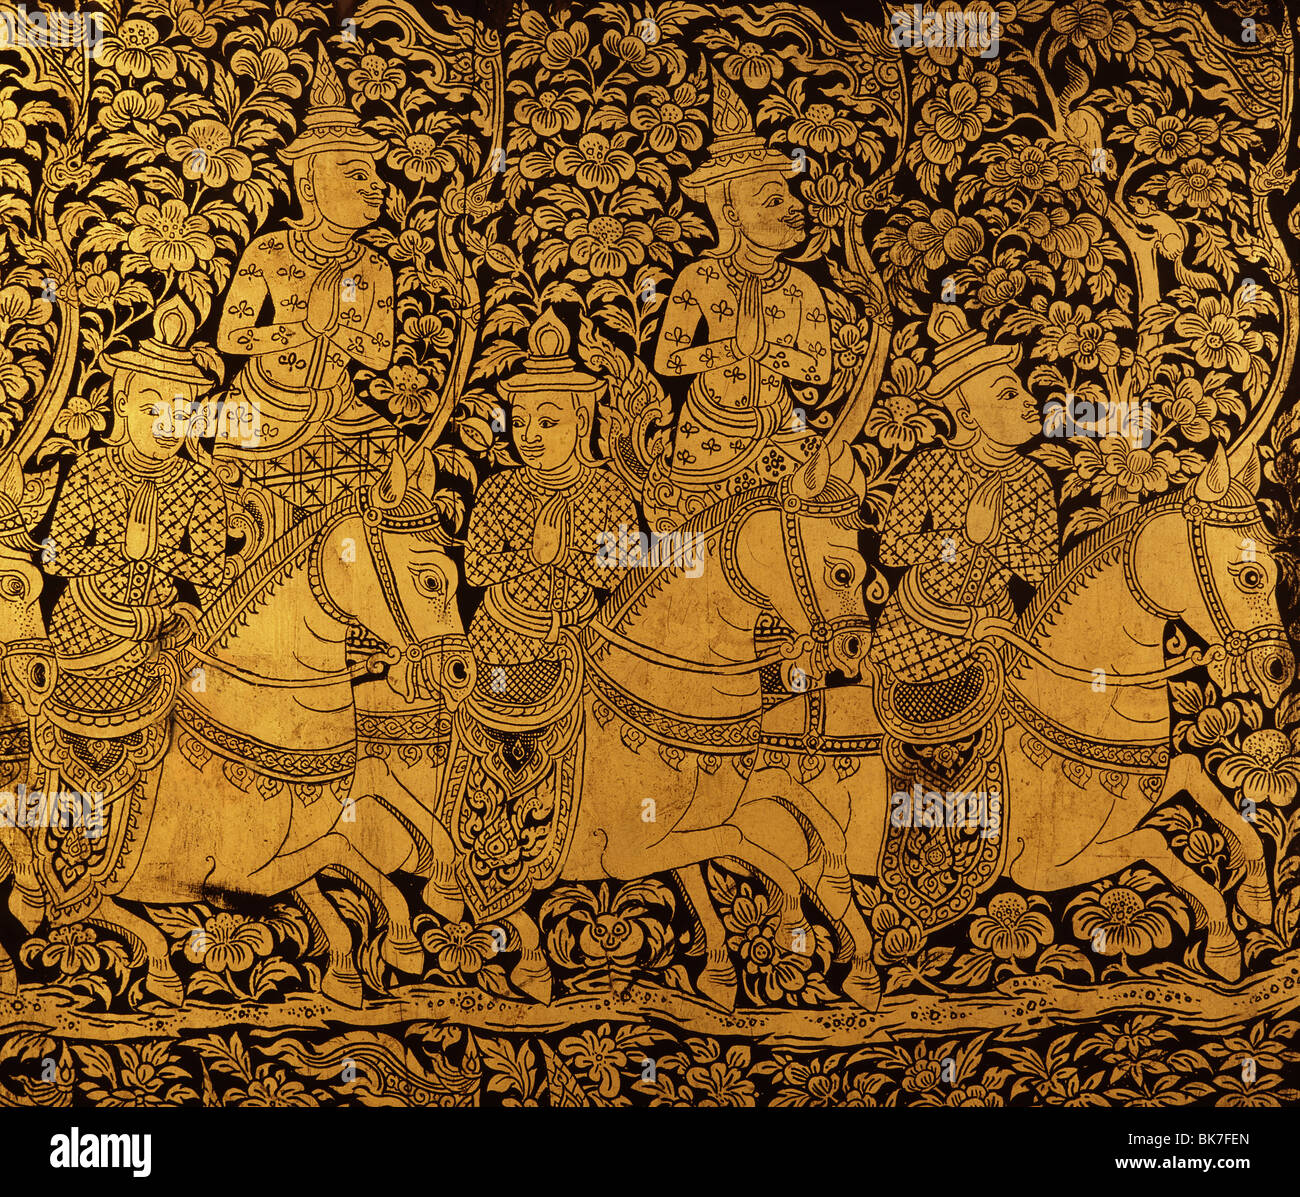 Detail of a lacquered cabinet with a scene of horsemen from the late Ayutthaya period, Thailand, Southeast Asia, - Stock Image